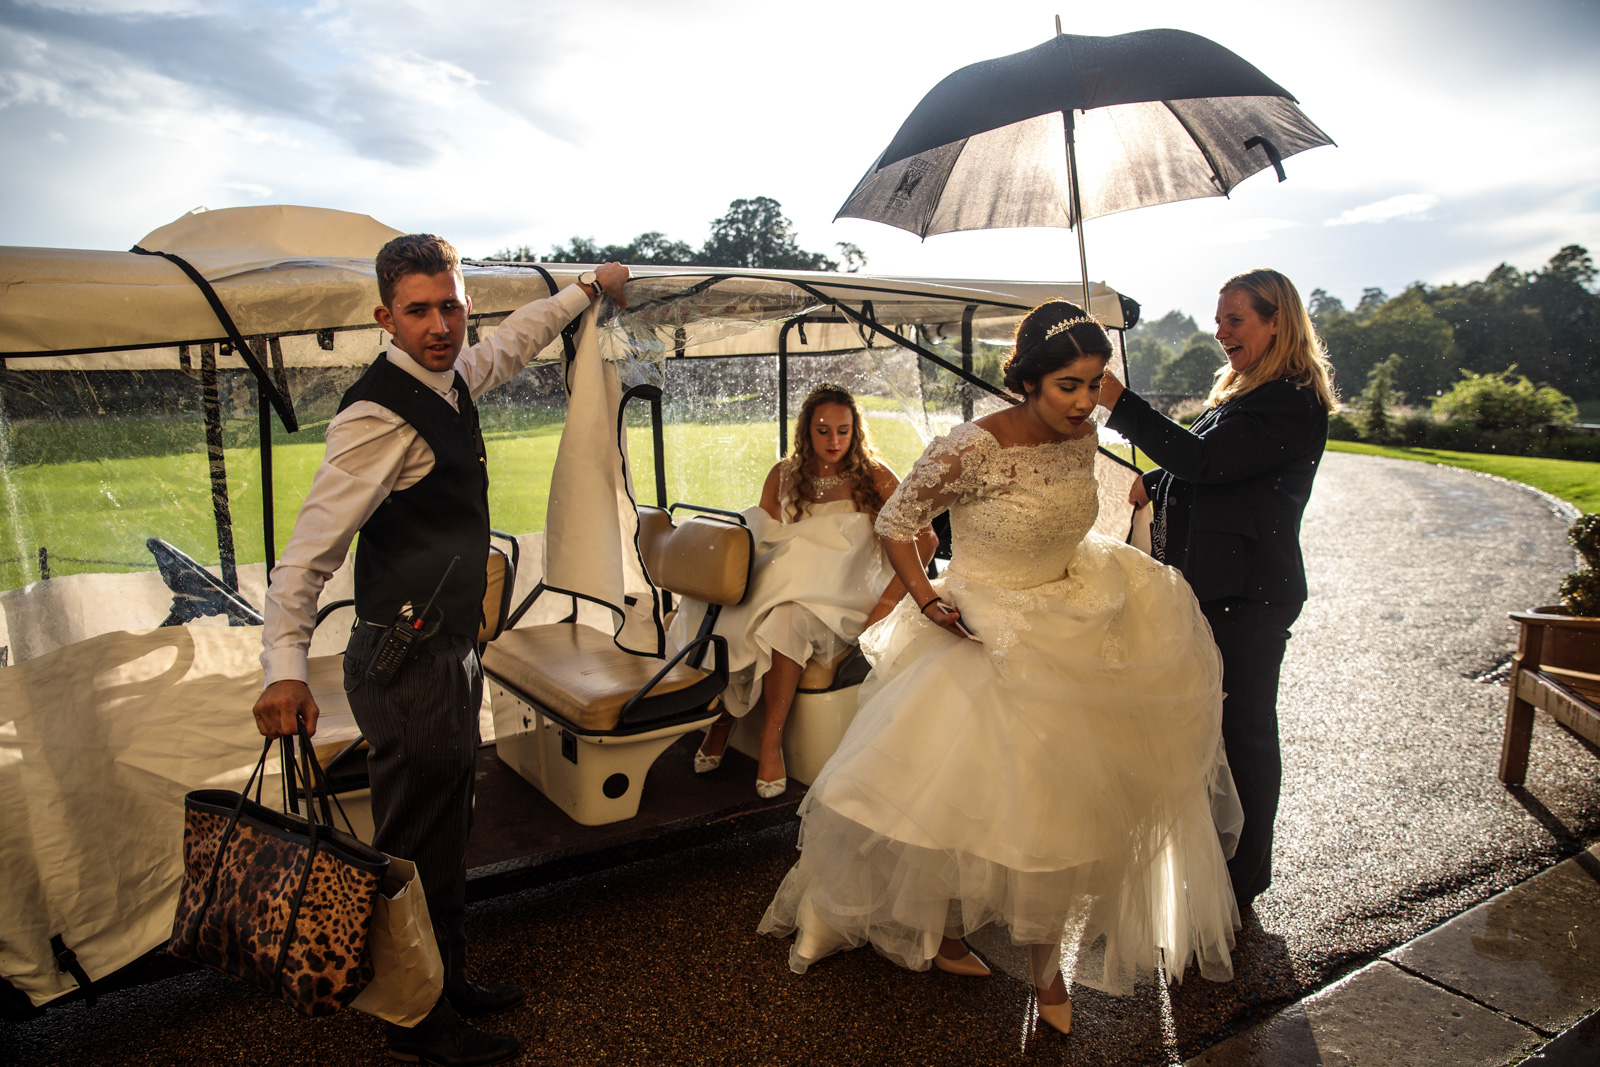 Debutantes arrive at Leeds Castle for the Queen Charlotte's Ball on September 09, 2017 in Maidstone.